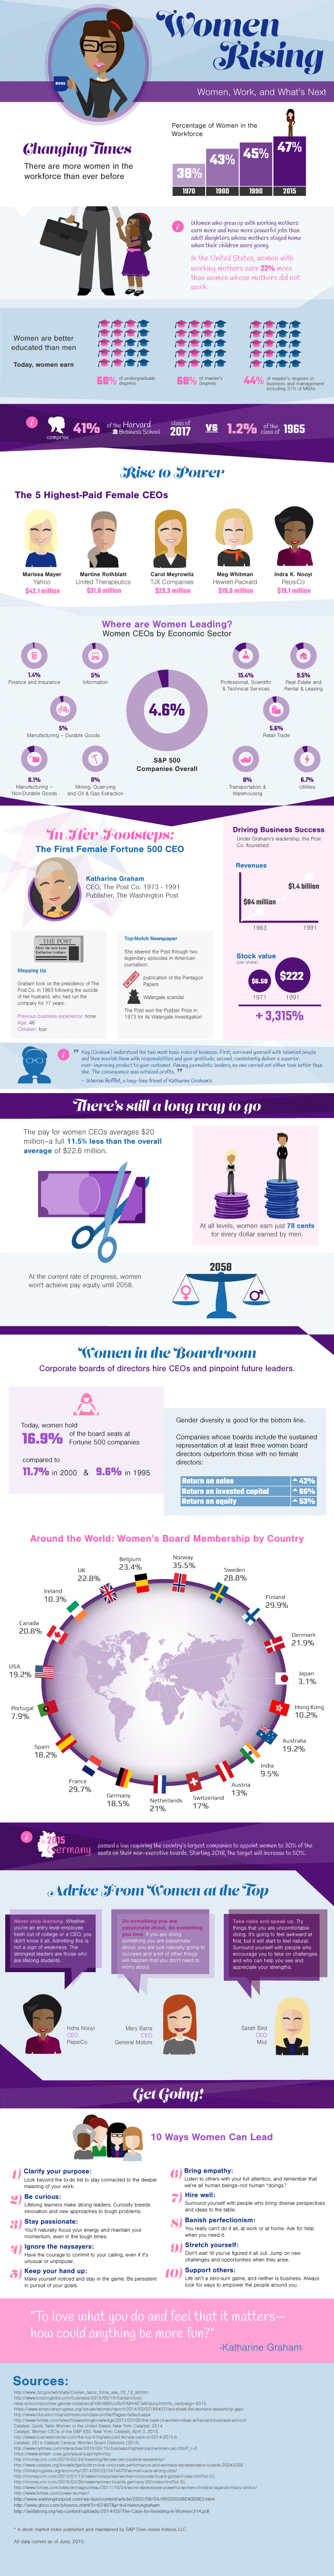 women-rising-infographic[2]